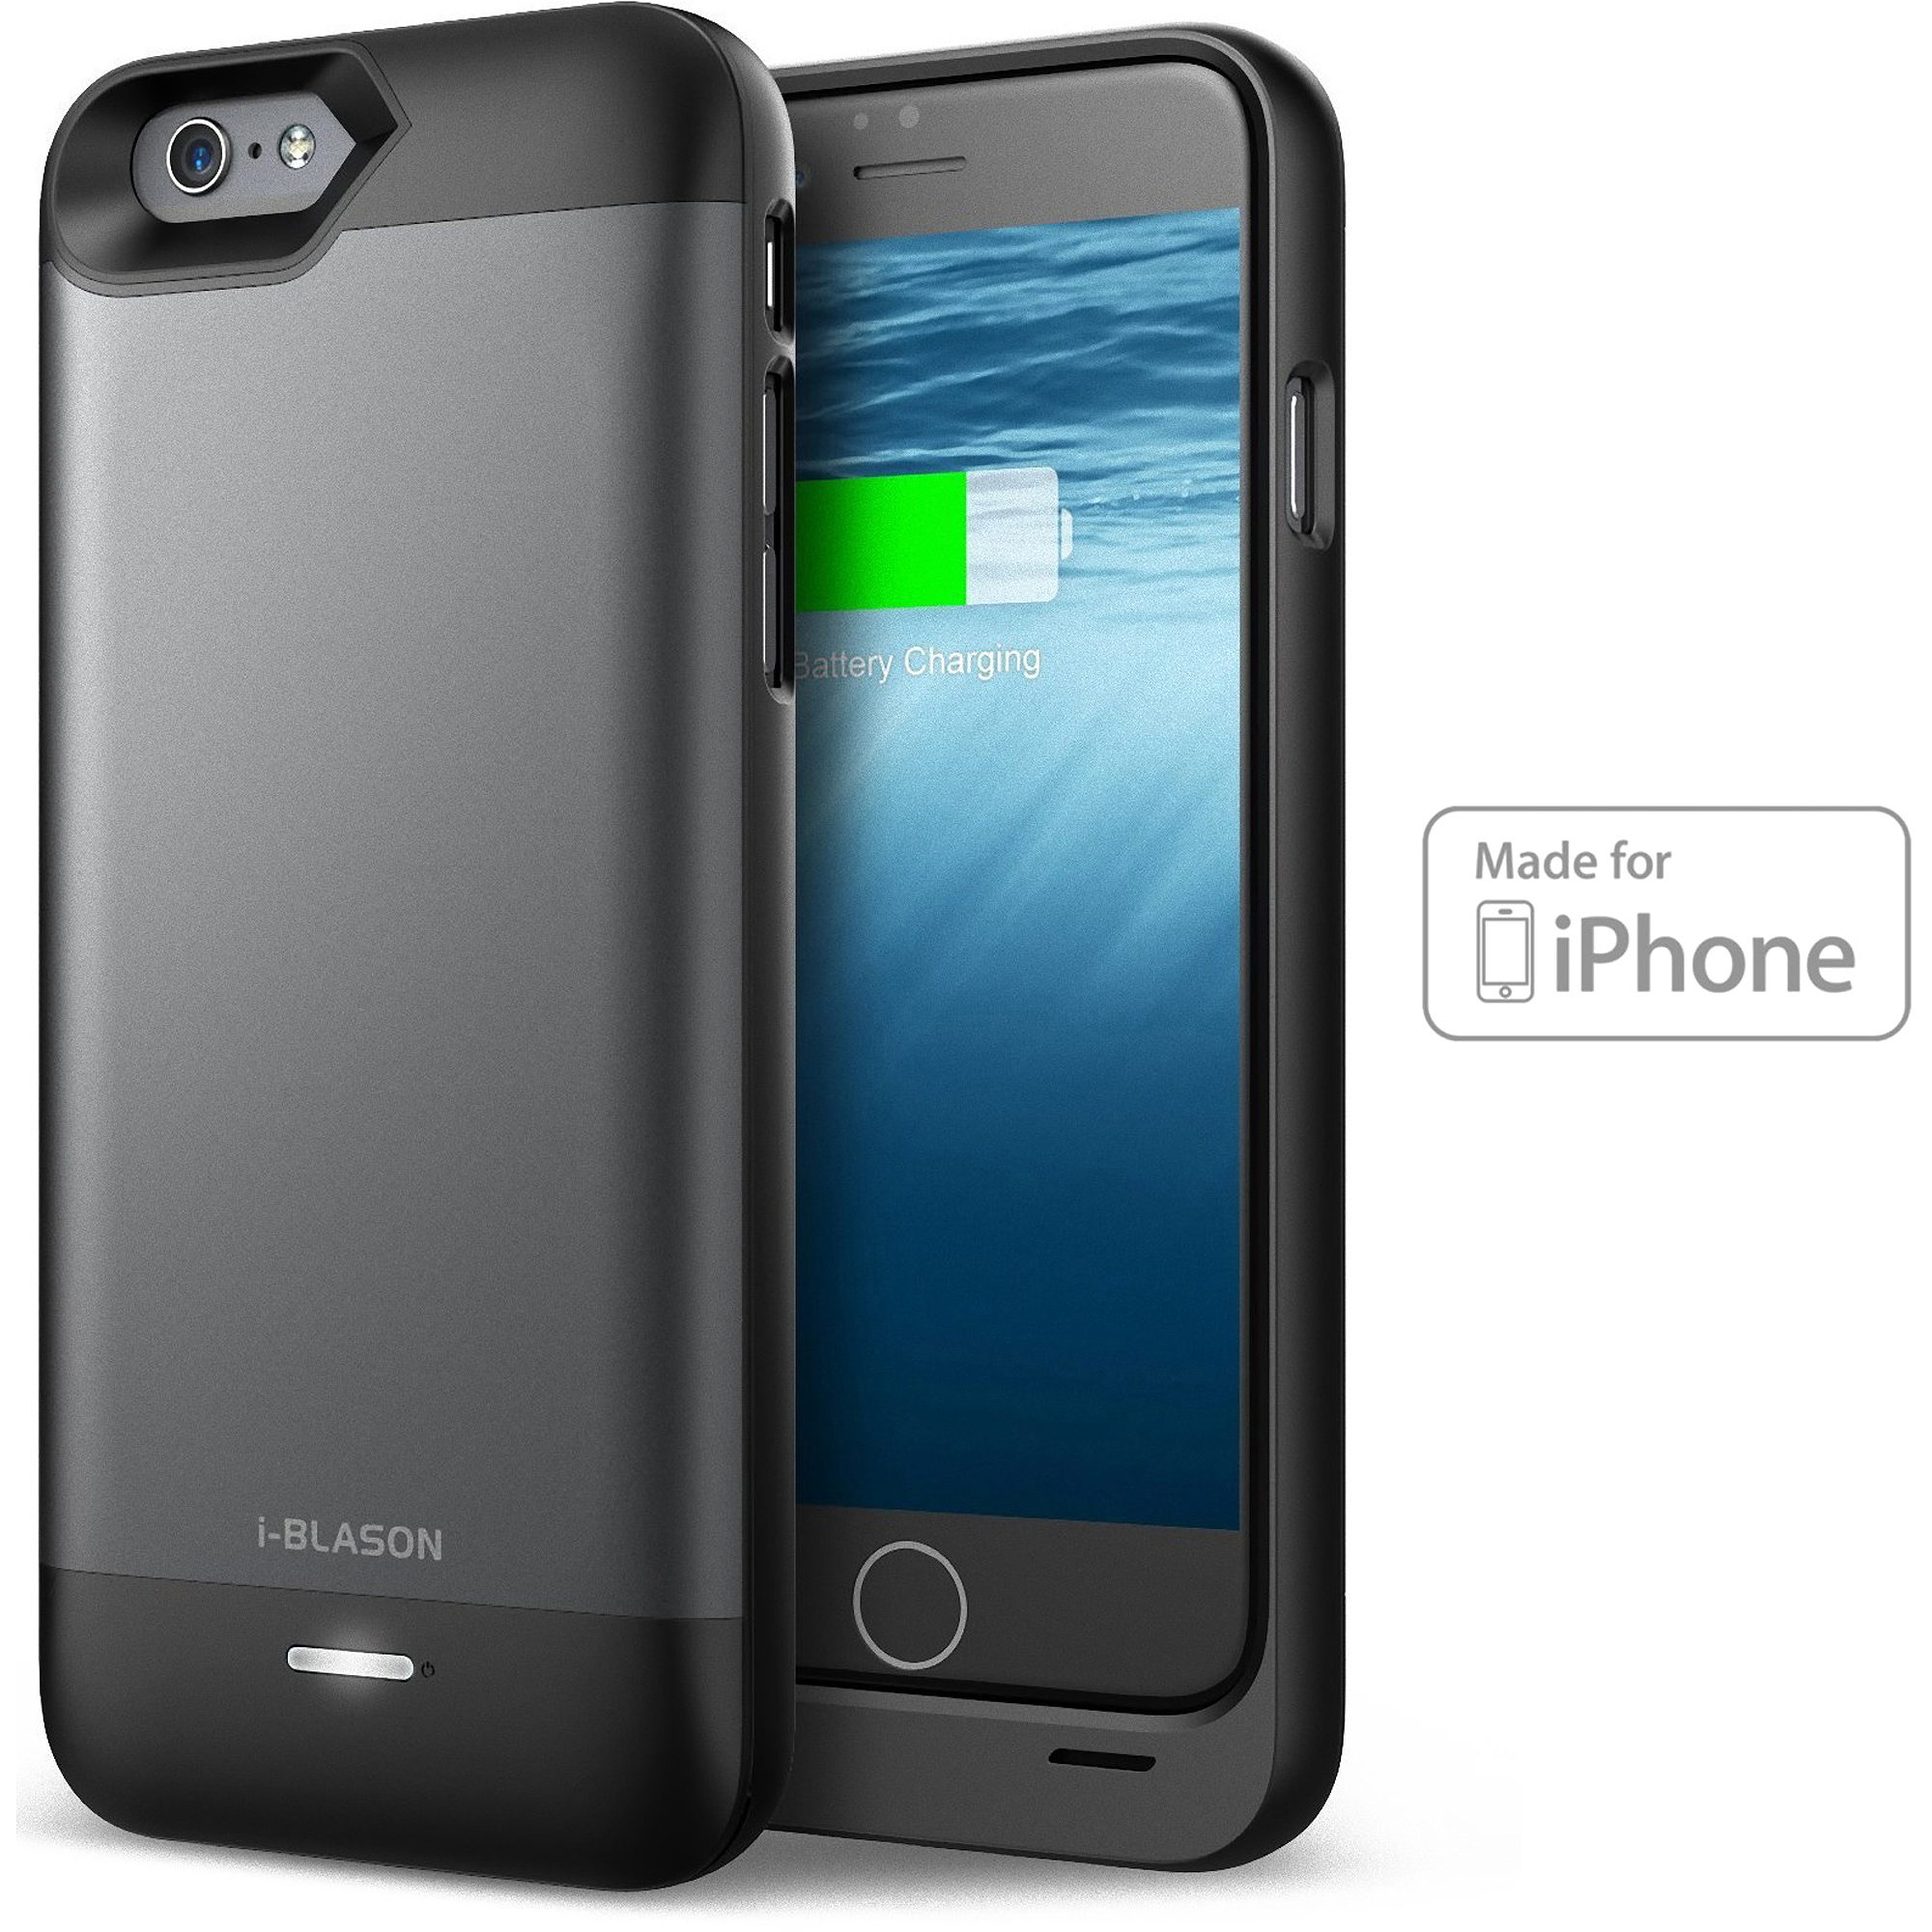 i-Blason Unity Series 3200mAh Ultra-Slim External Battery Case Power Pack for Apple iPhone 6 & 6S (MFI certified), Black/Grey